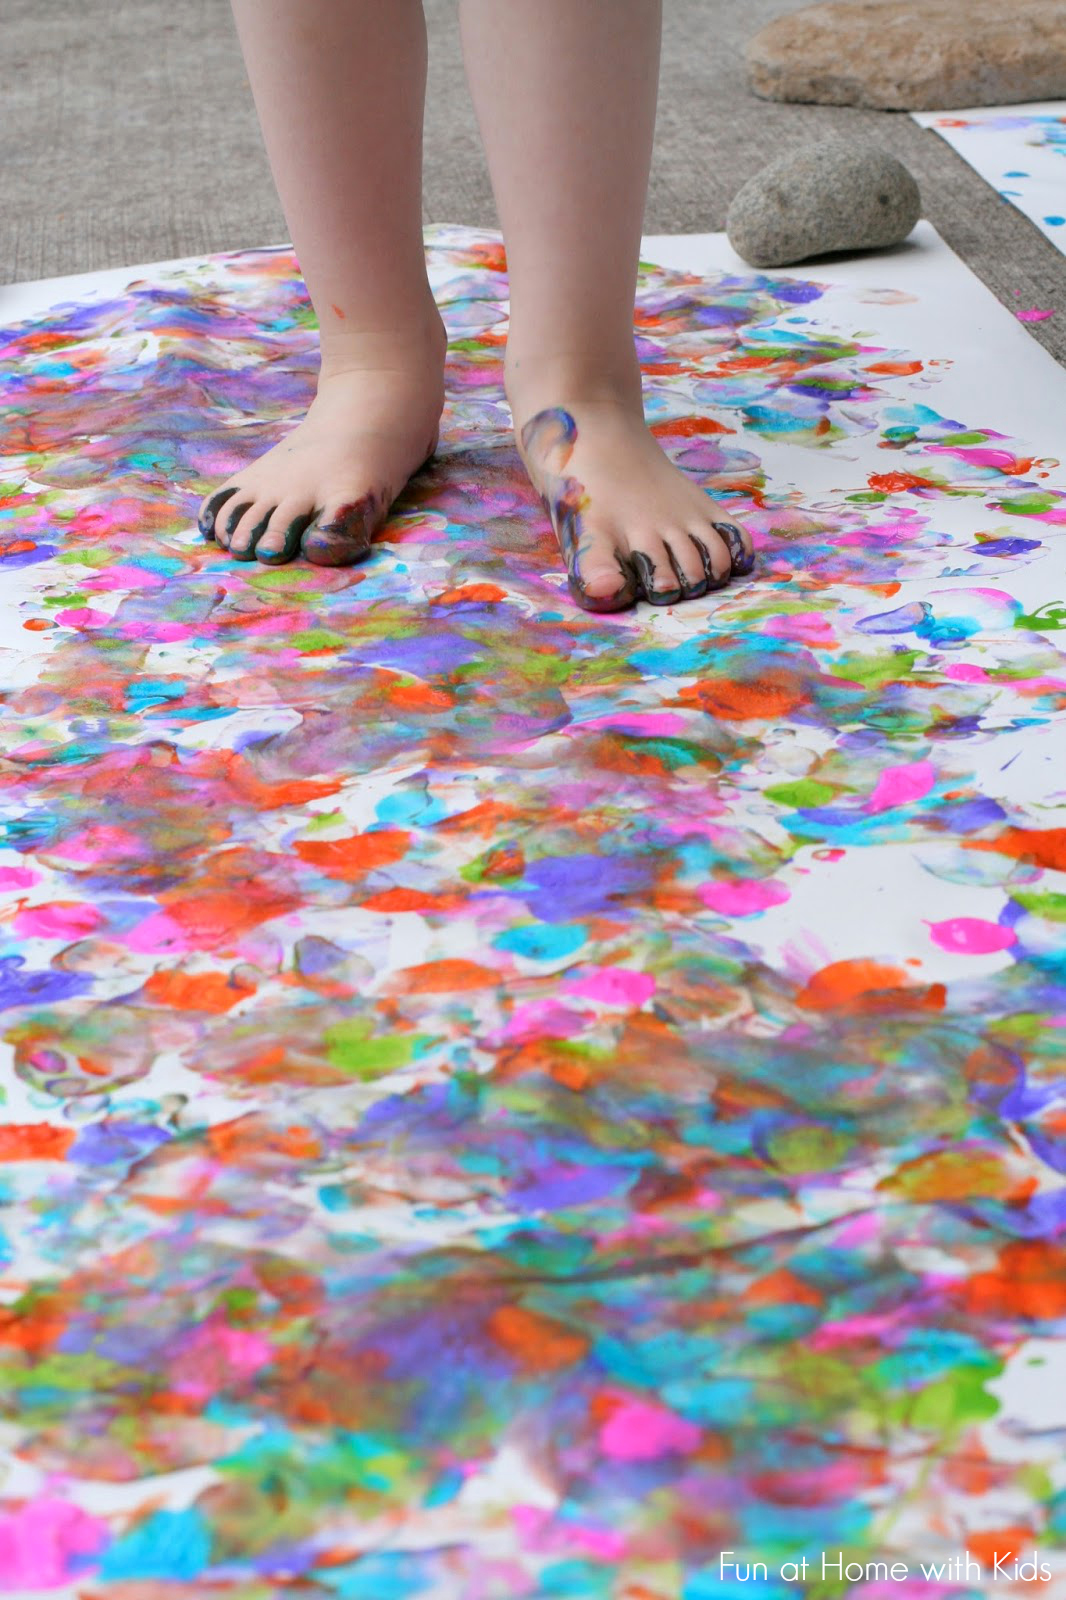 Big art painting with your feet for Hand and feet painting ideas